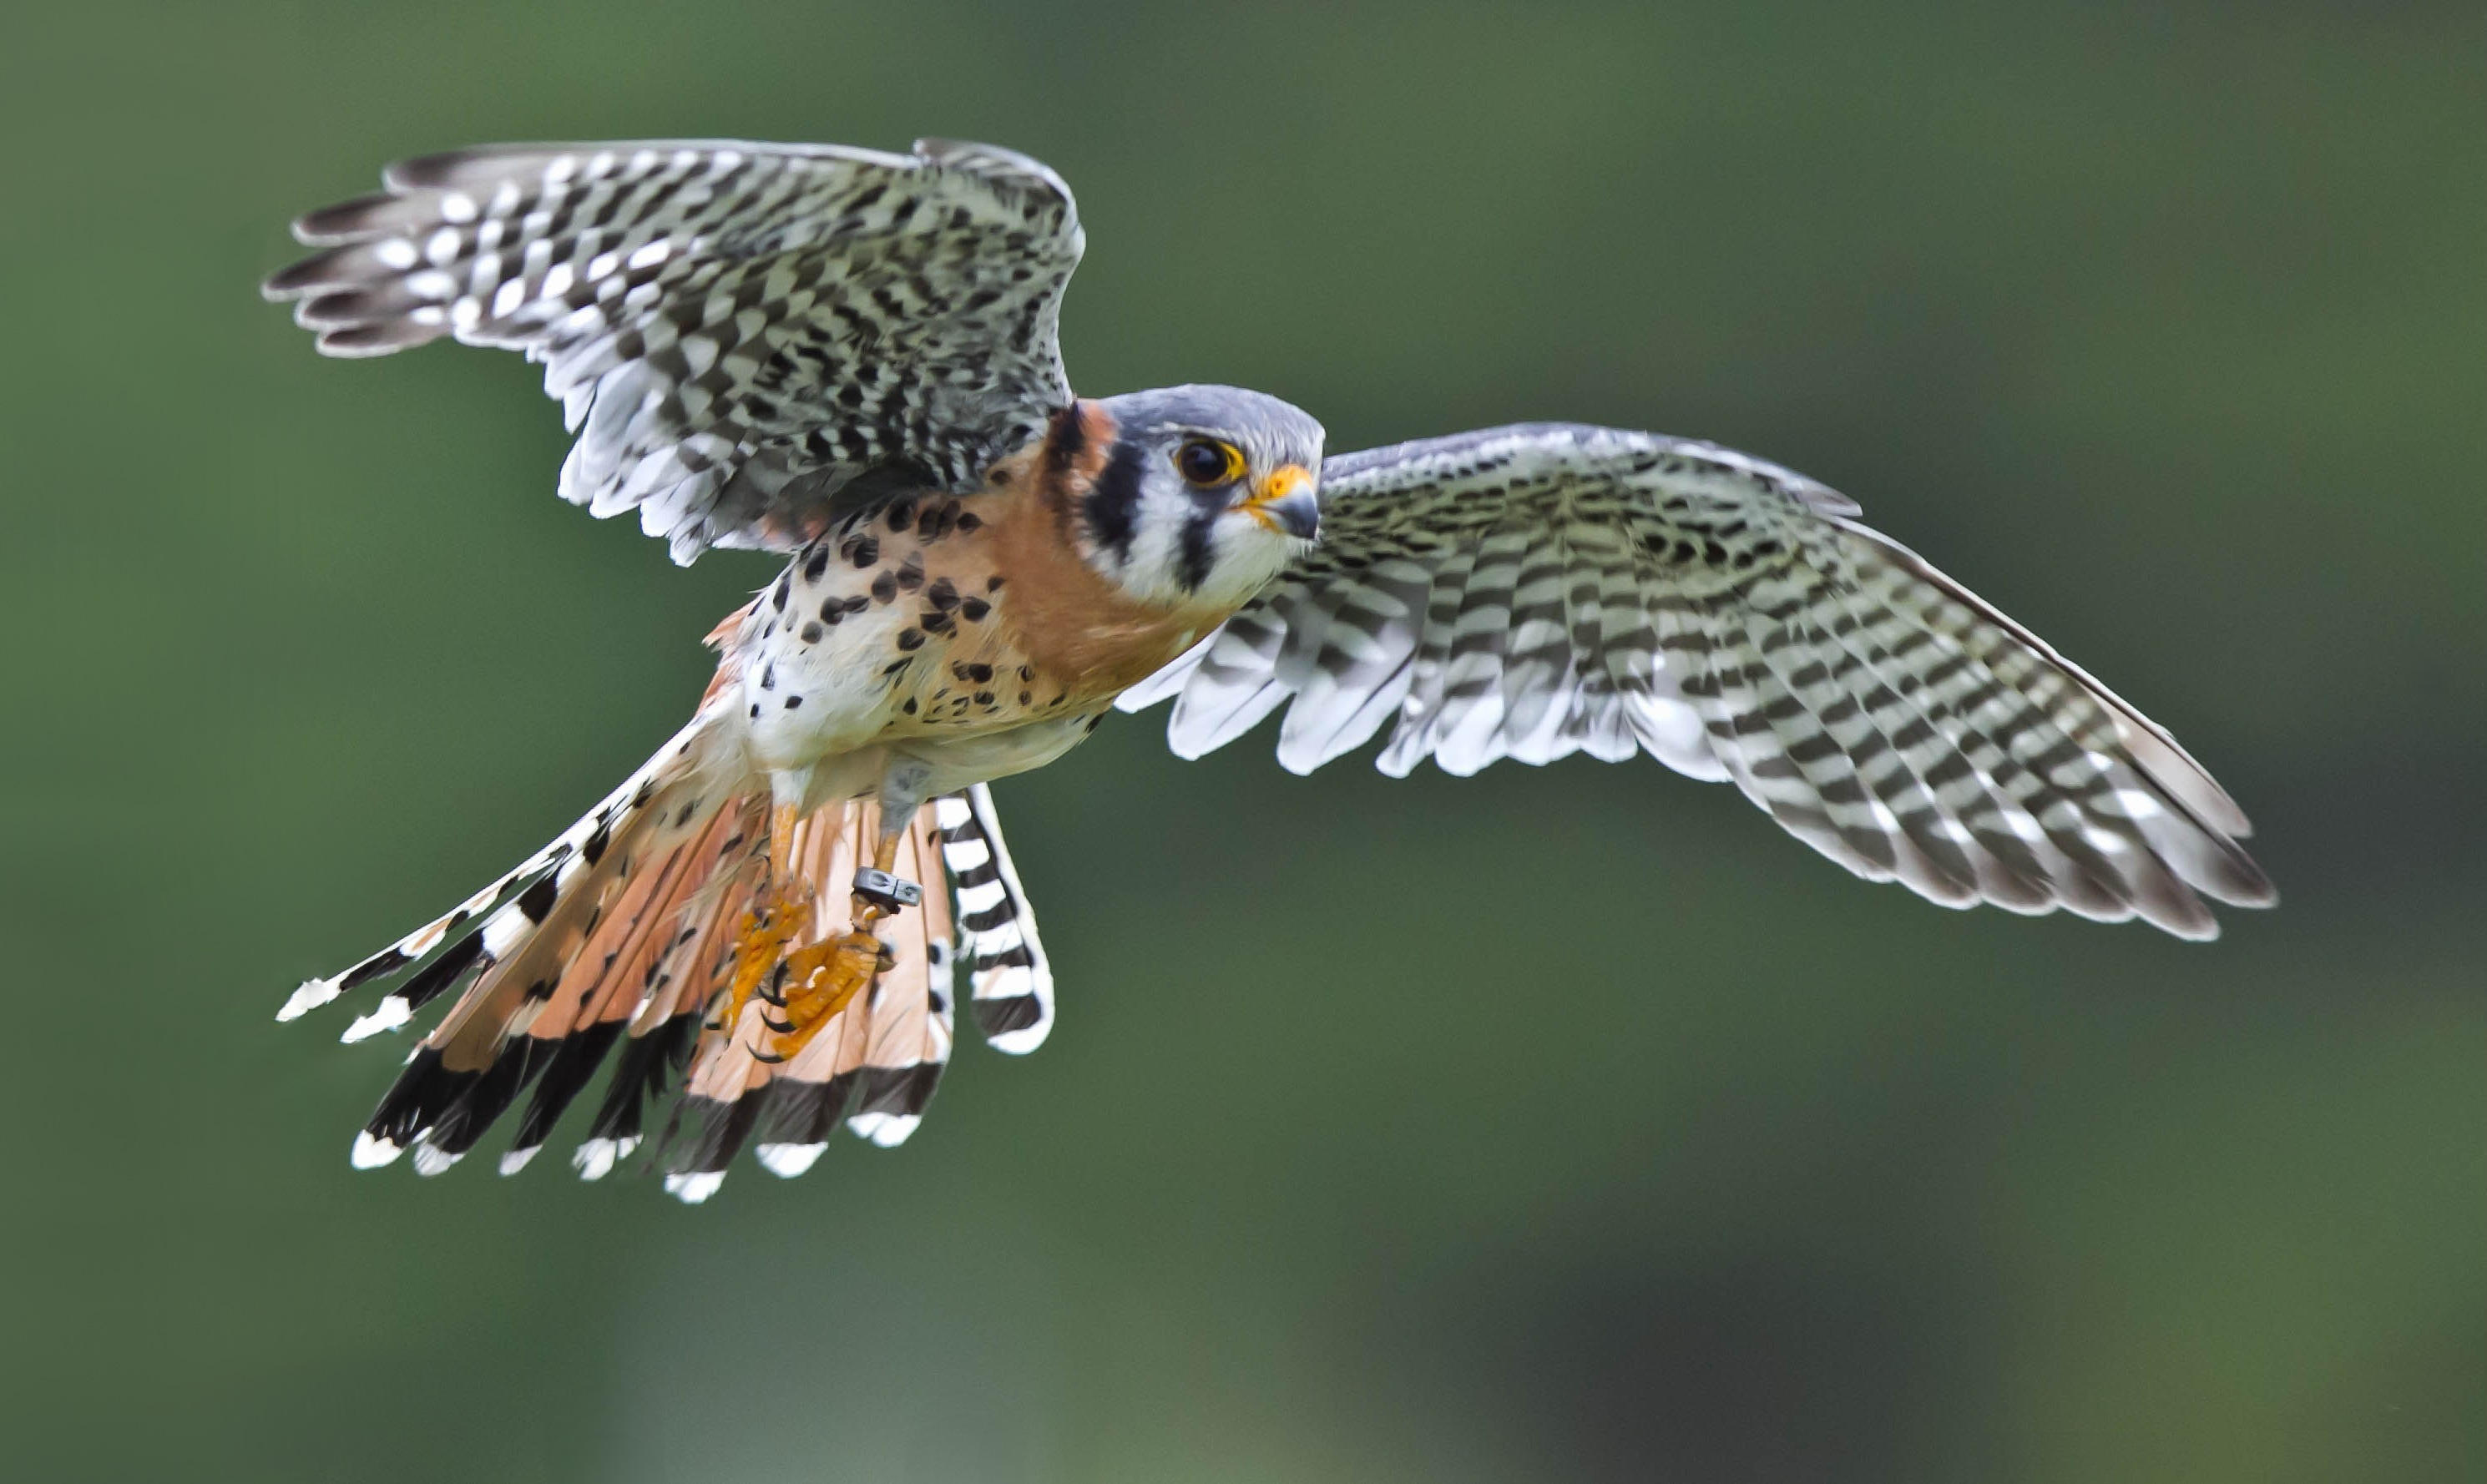 American kestrel full hd wallpaper and background image - Birds of prey wallpaper hd ...